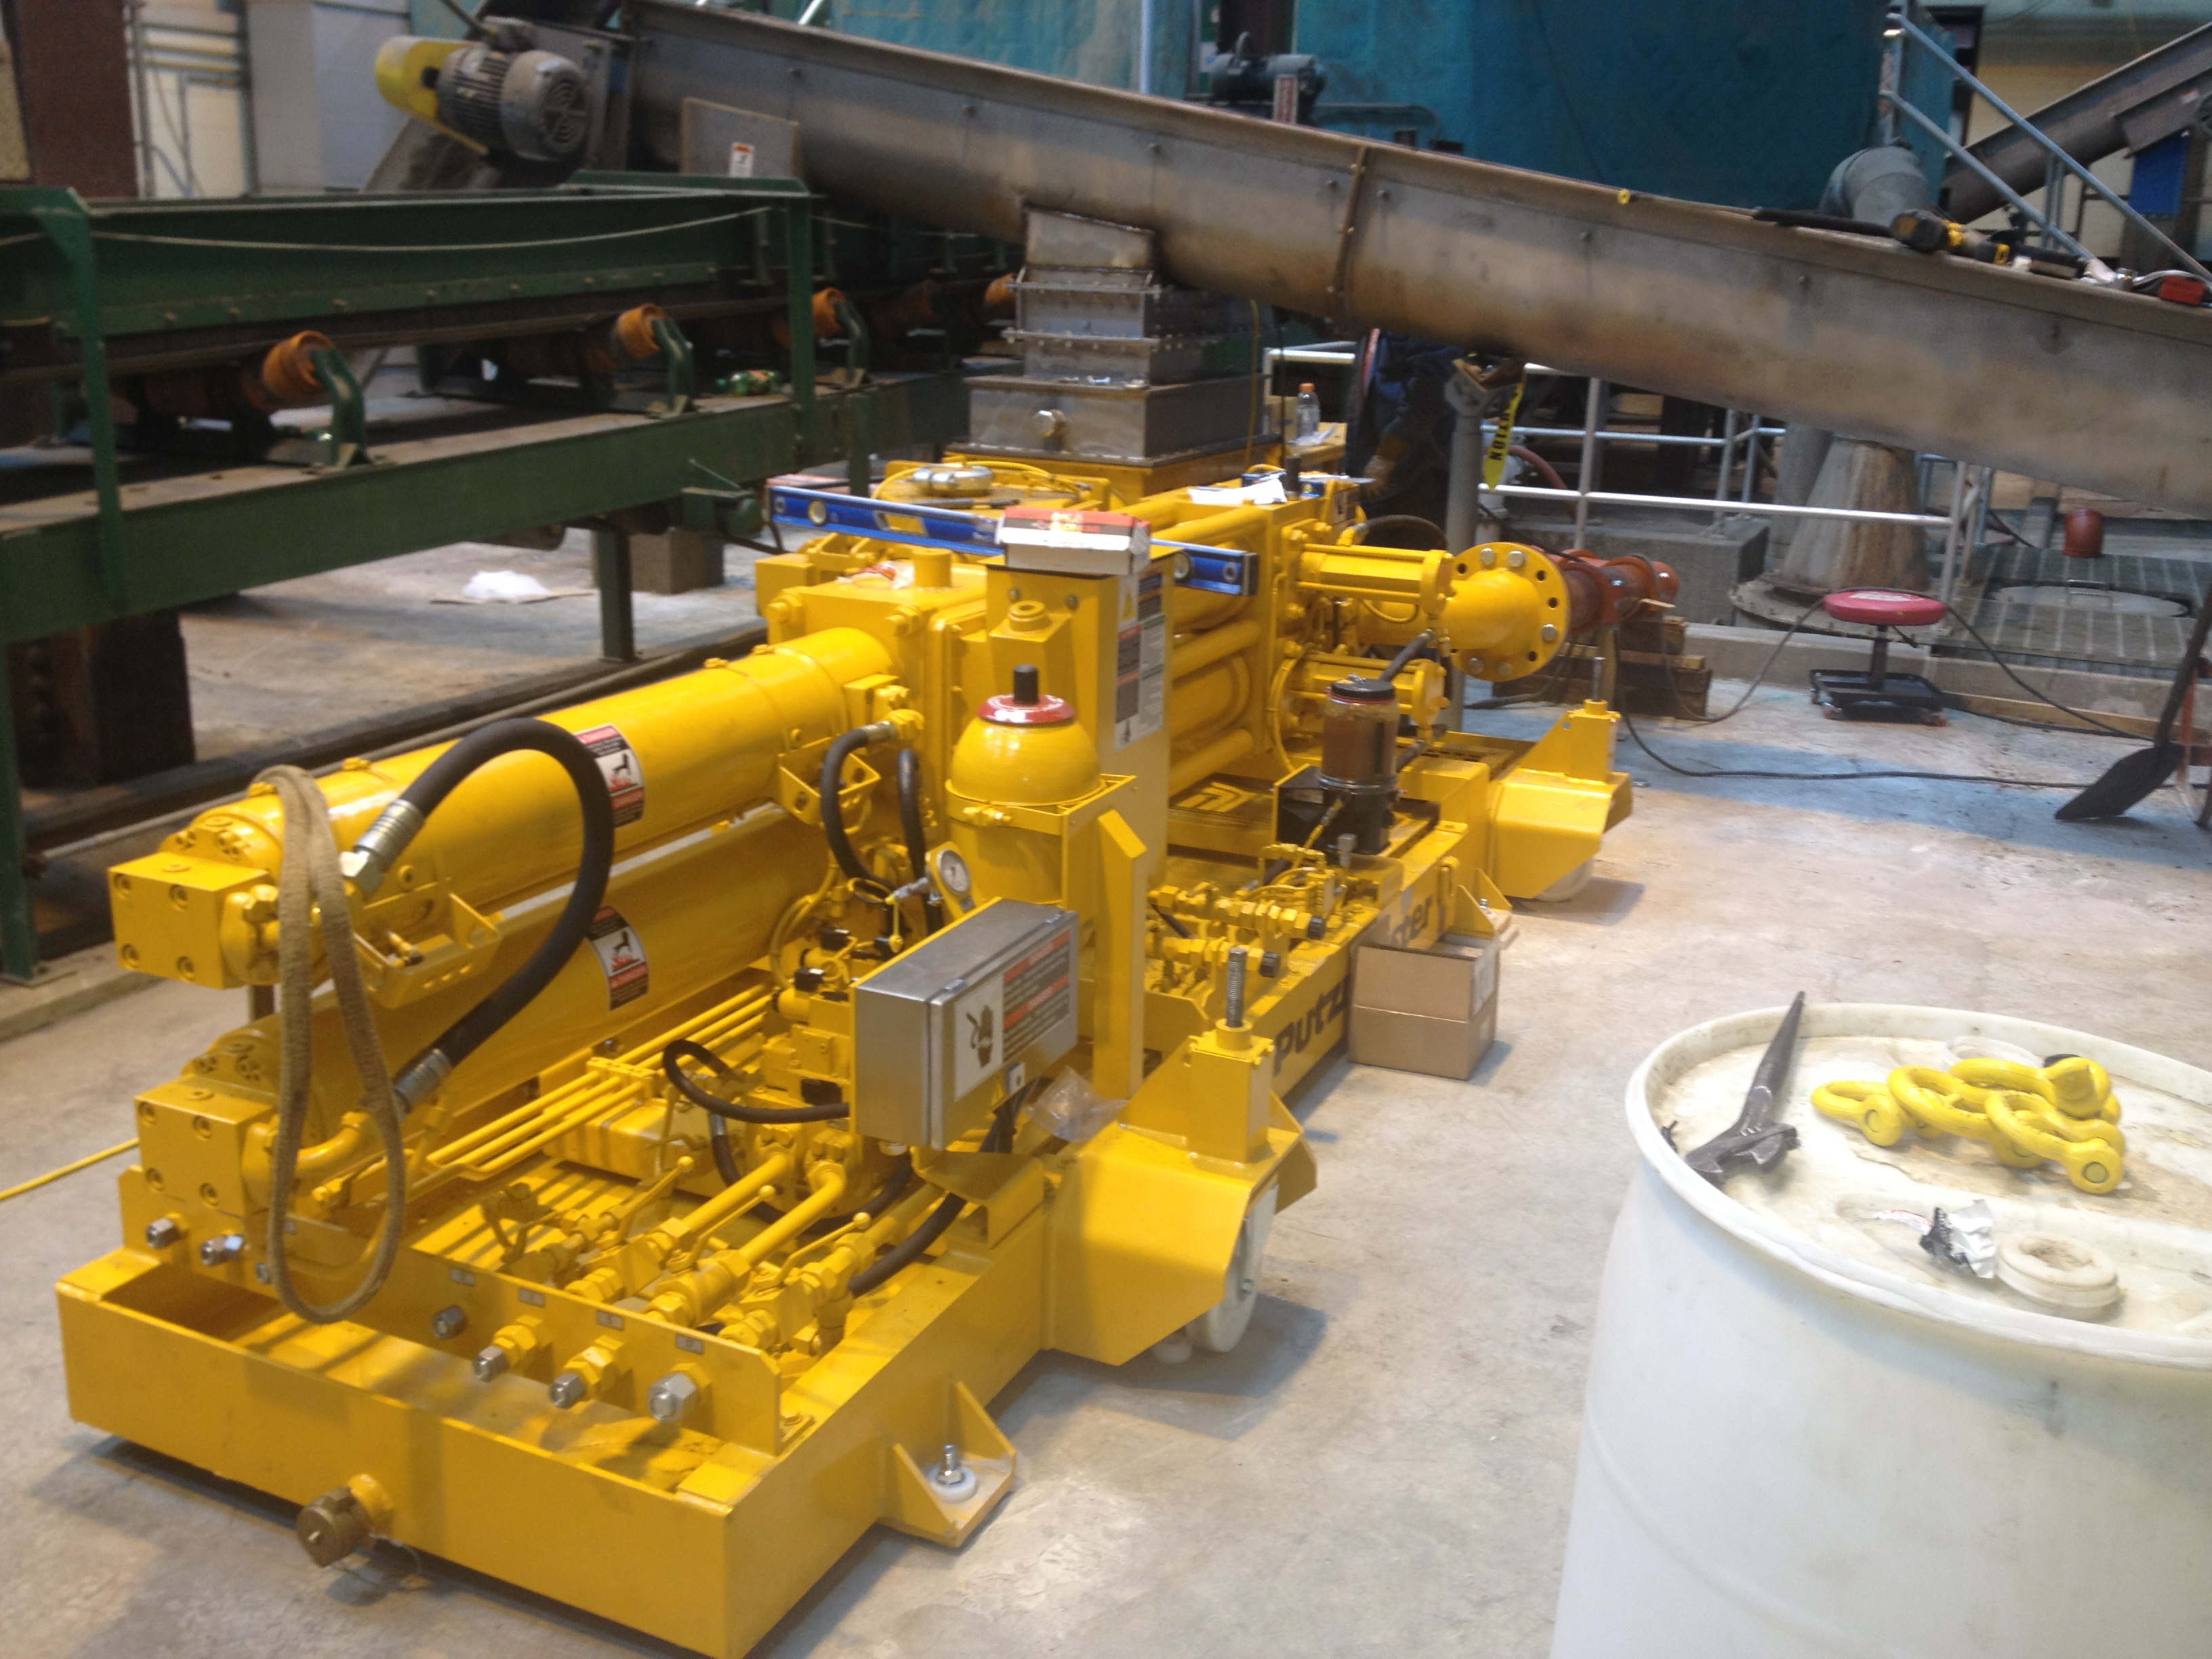 INSTALLATION OF PUMPS AND CONVEYORS